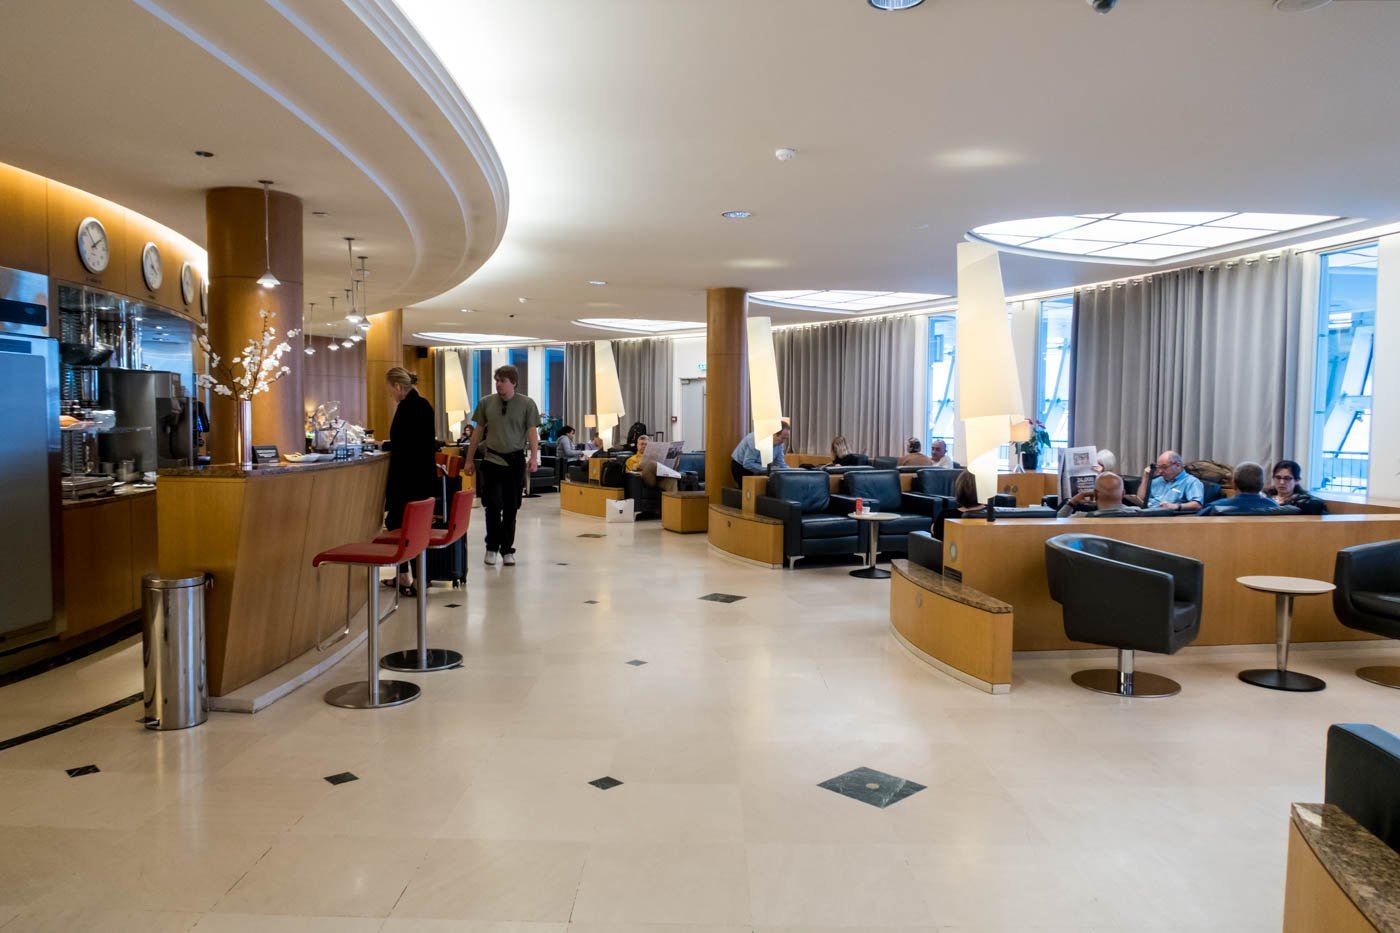 Air Canada Maple Leaf Lounge Overview